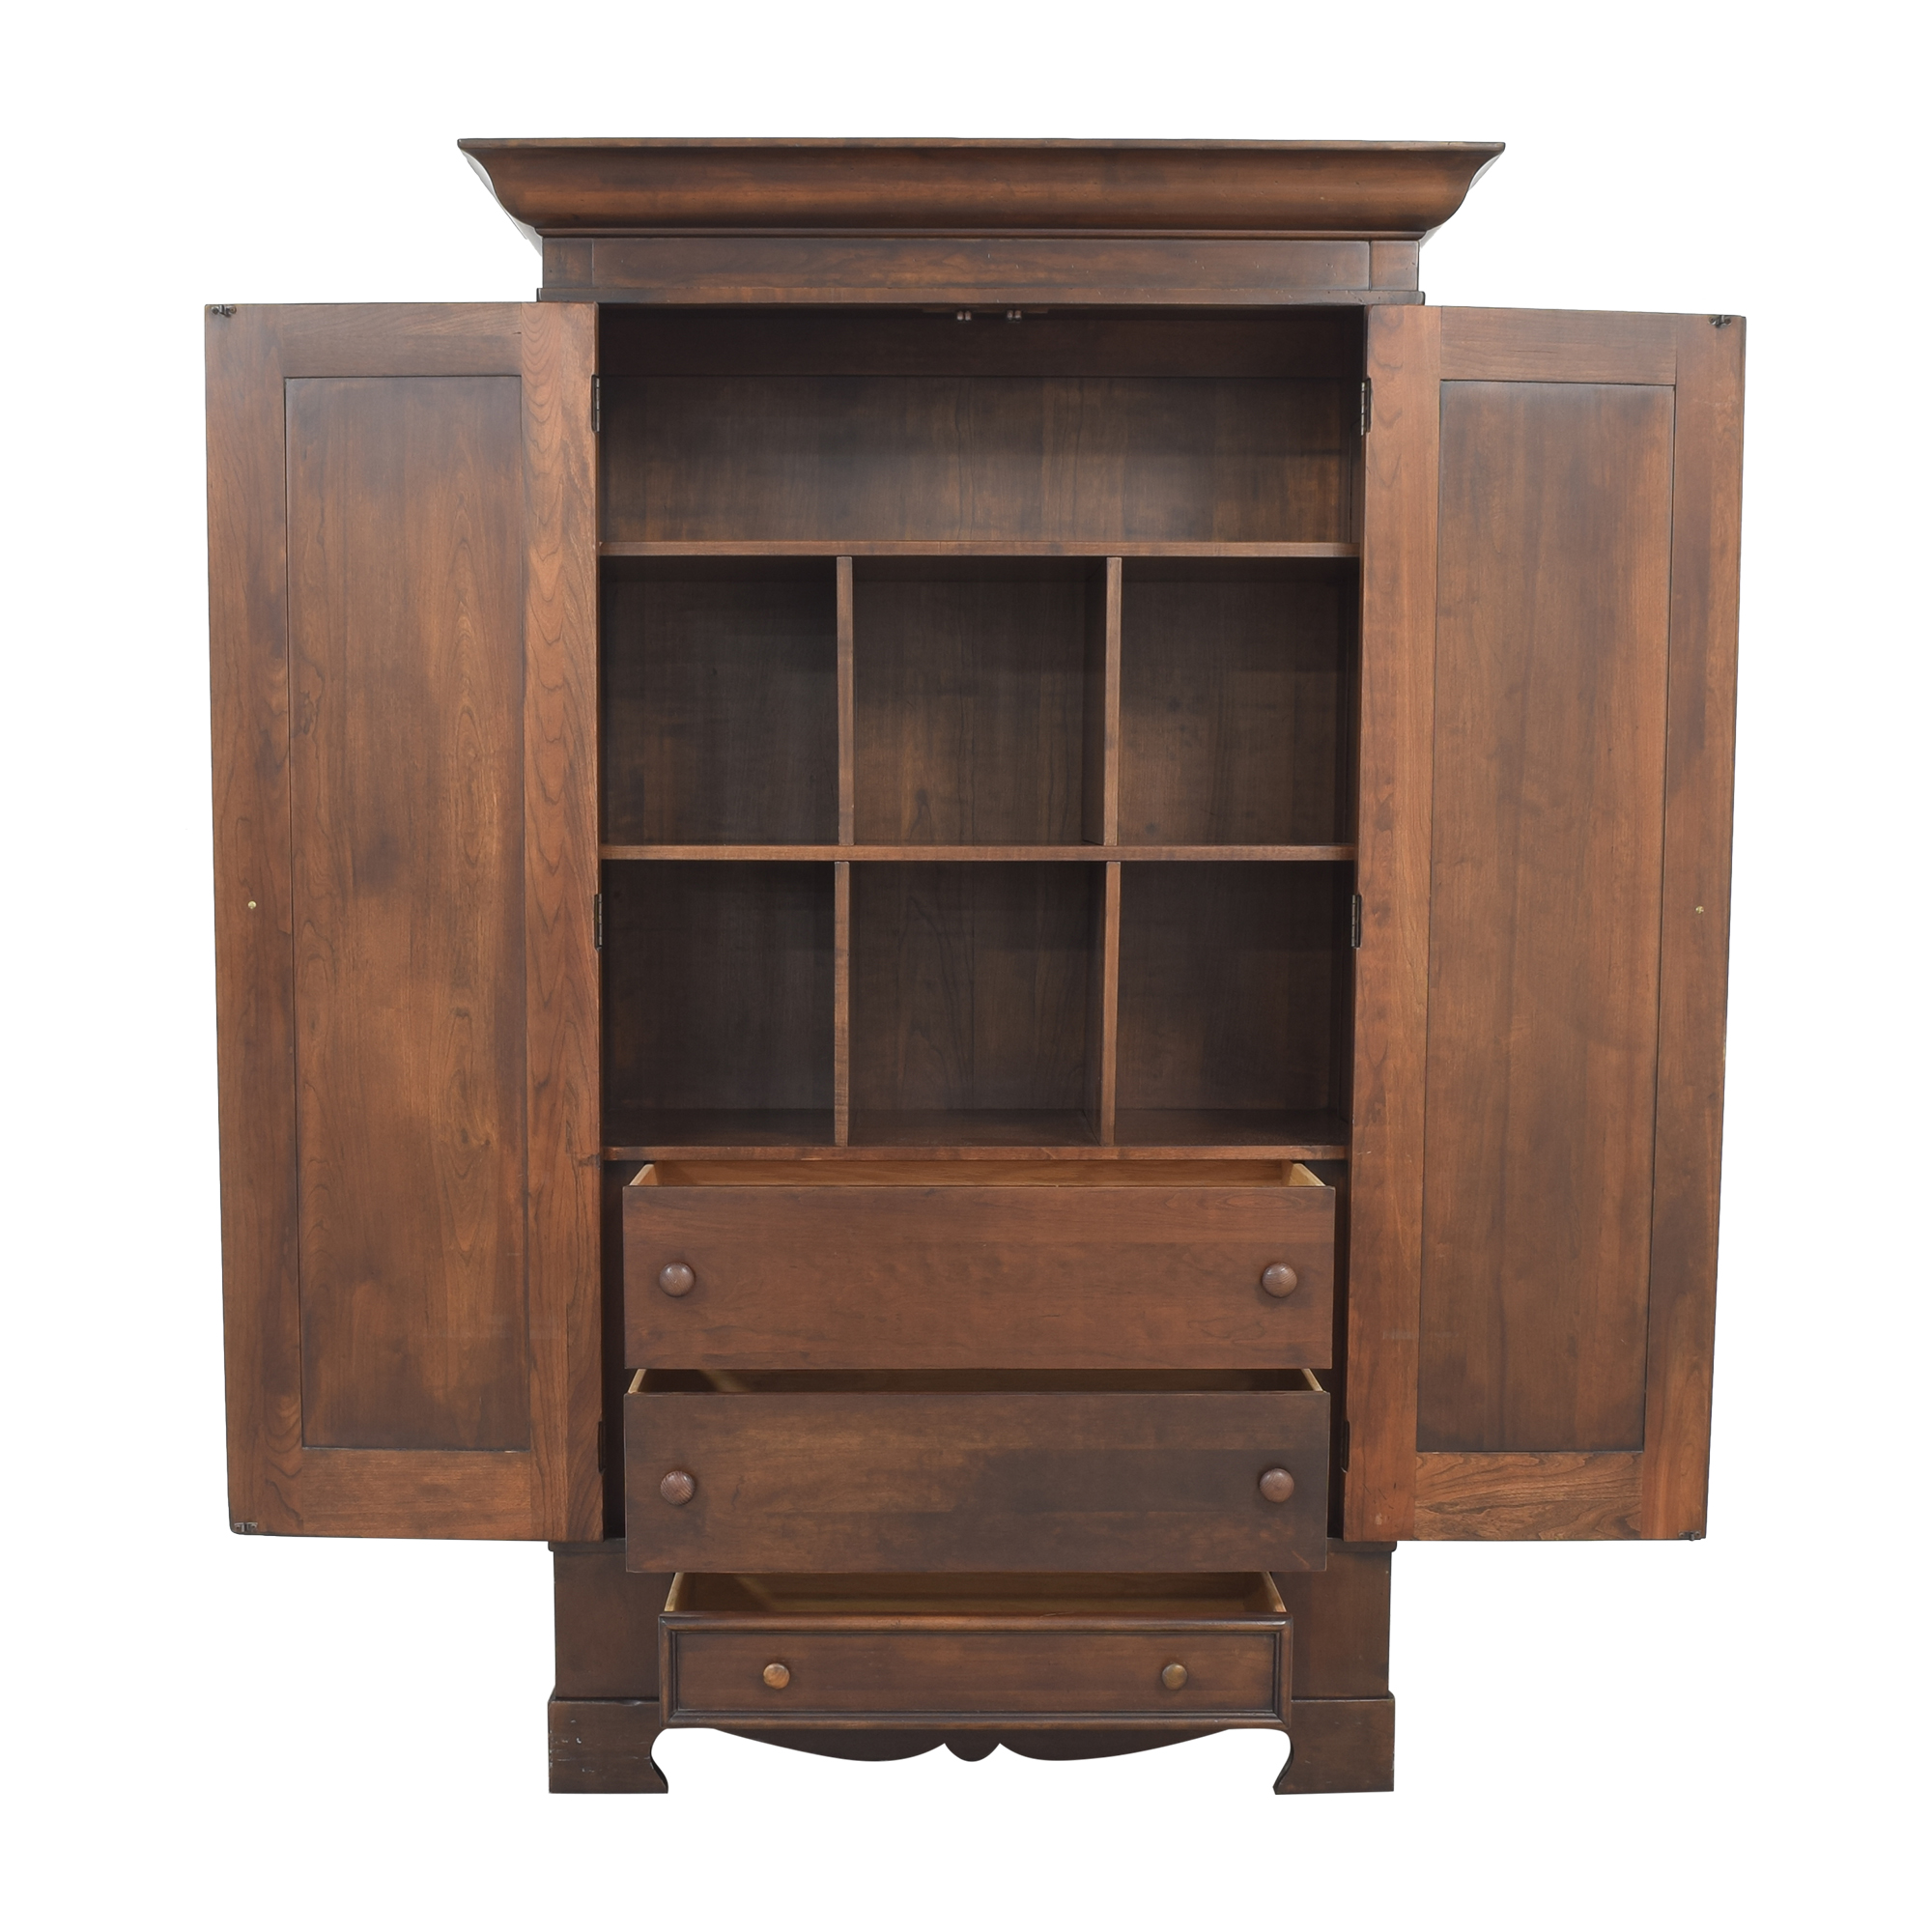 Traditional Armoire with Drawers Wardrobes & Armoires